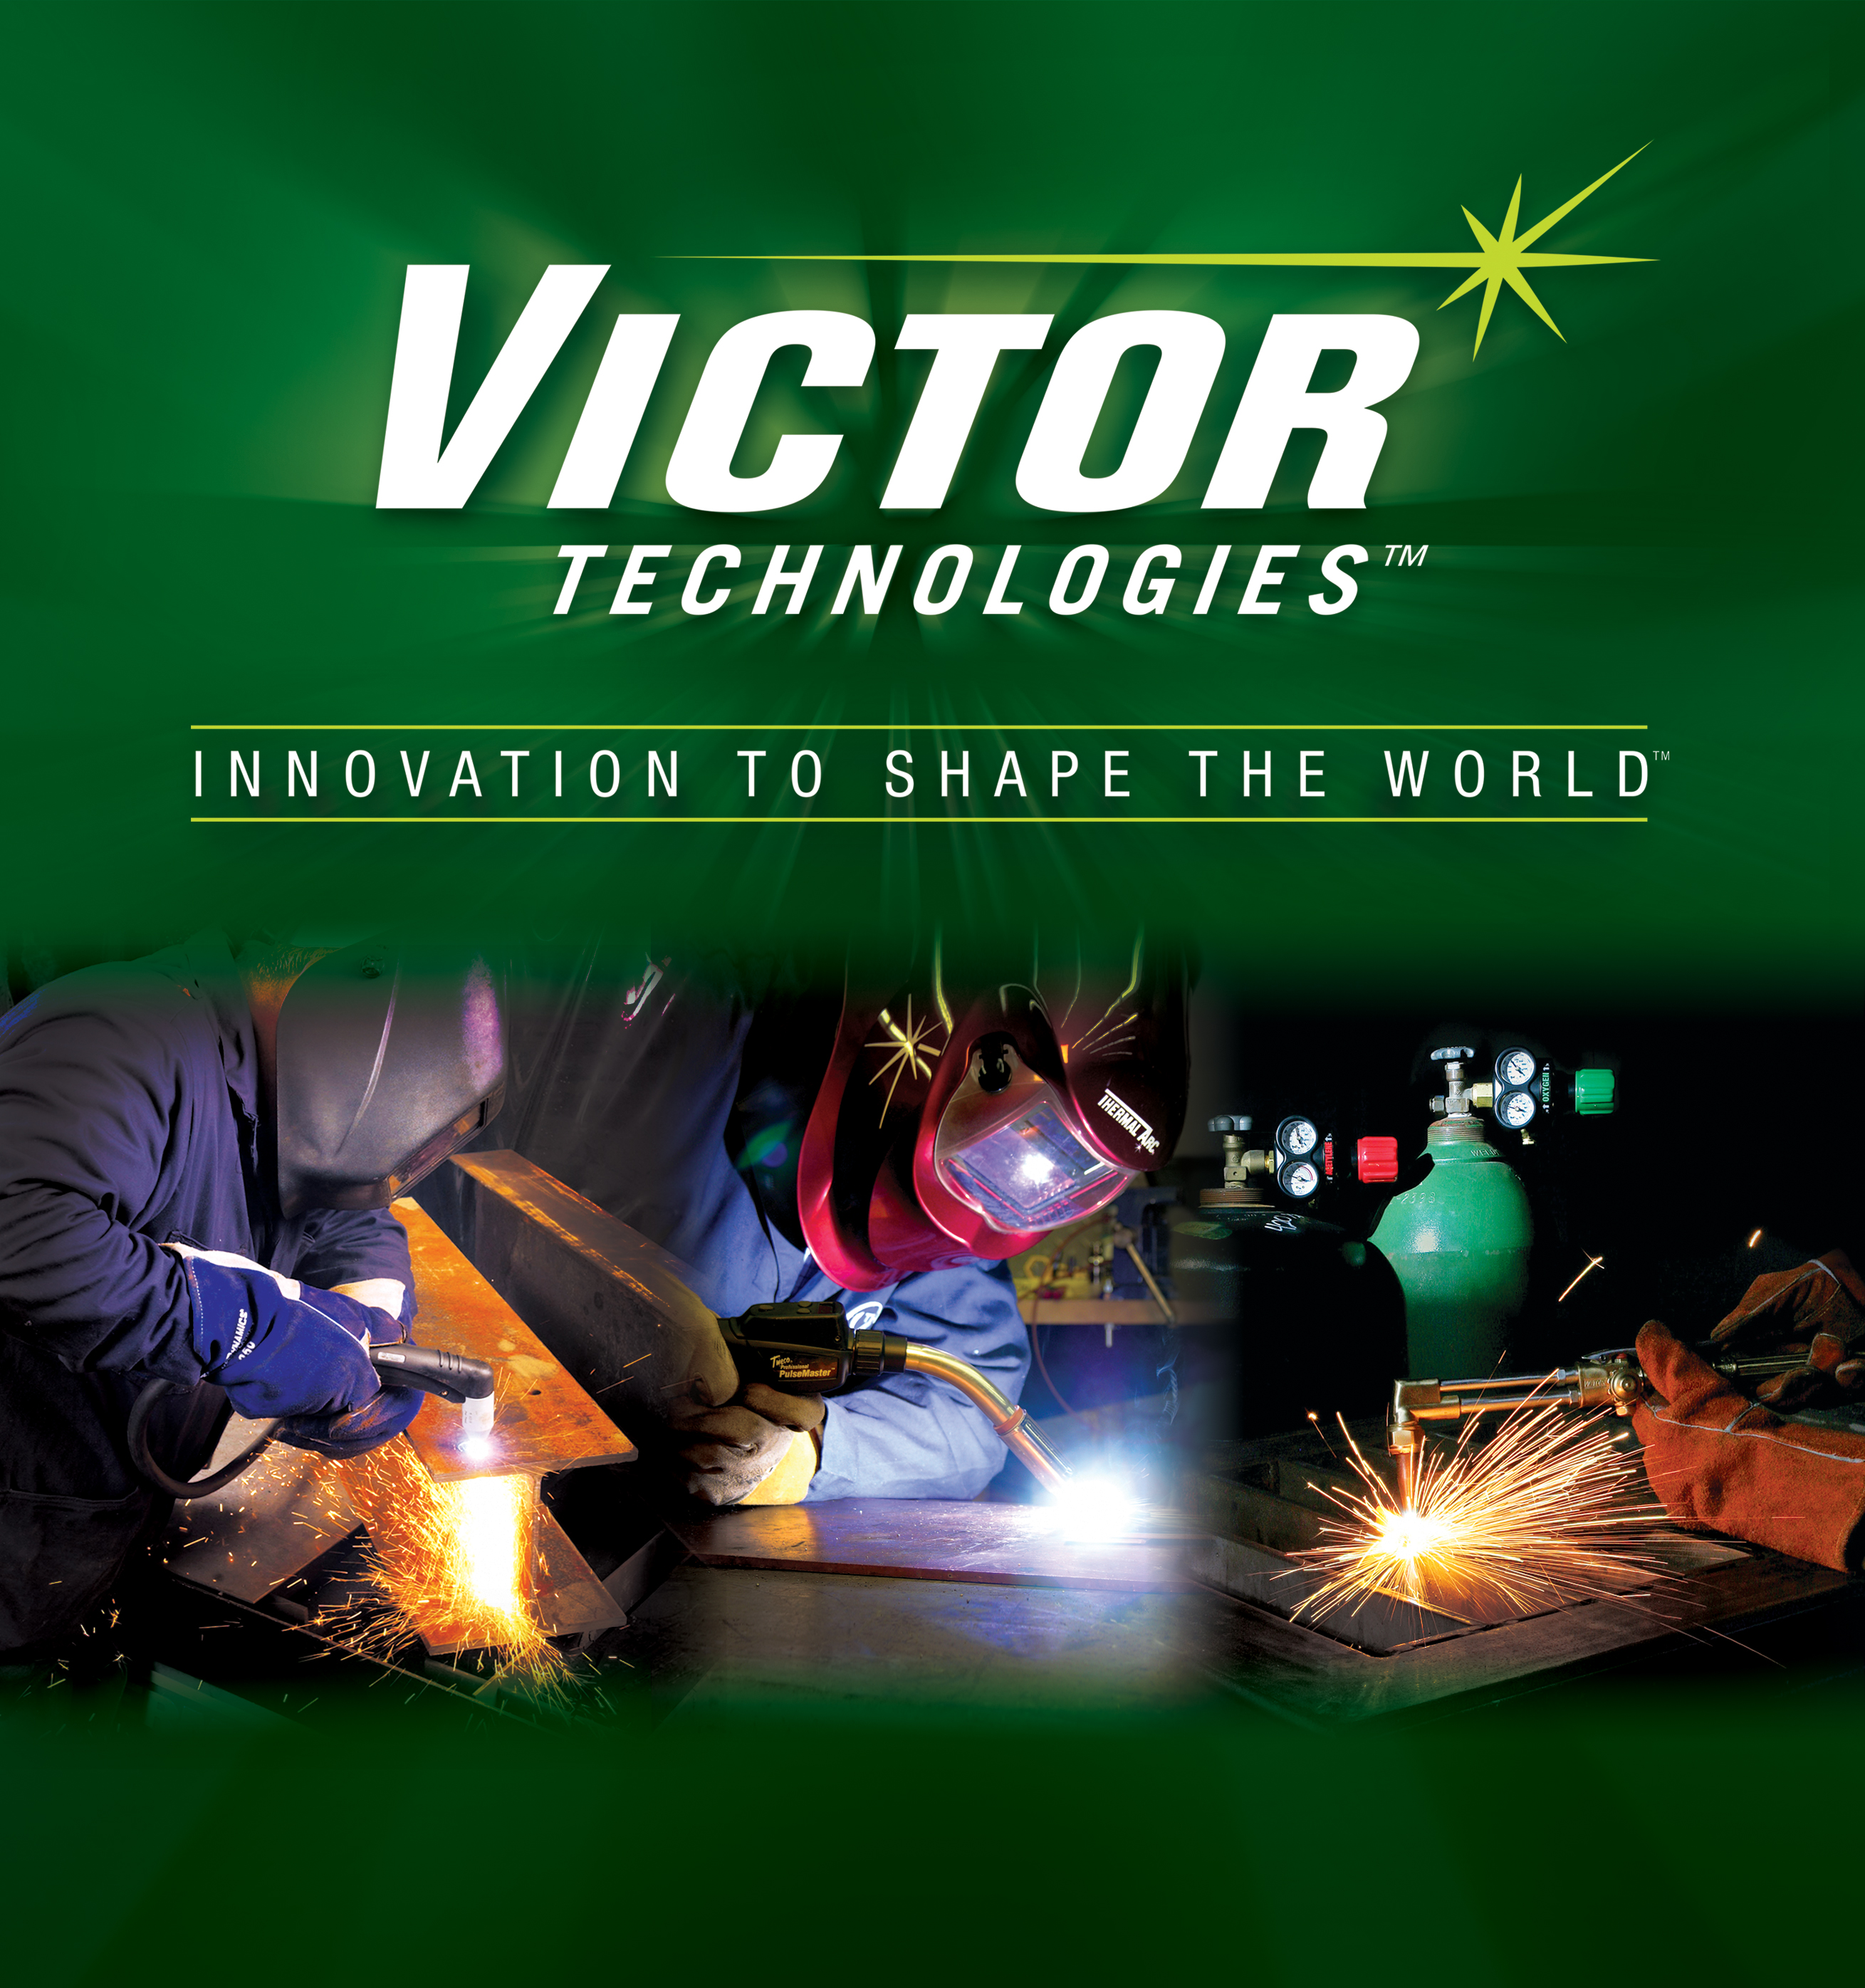 Victor Technologies has realigned its brand portfolio to position Victor as the lead brand for cutting and gas control products.(Click on image to enlarge it)